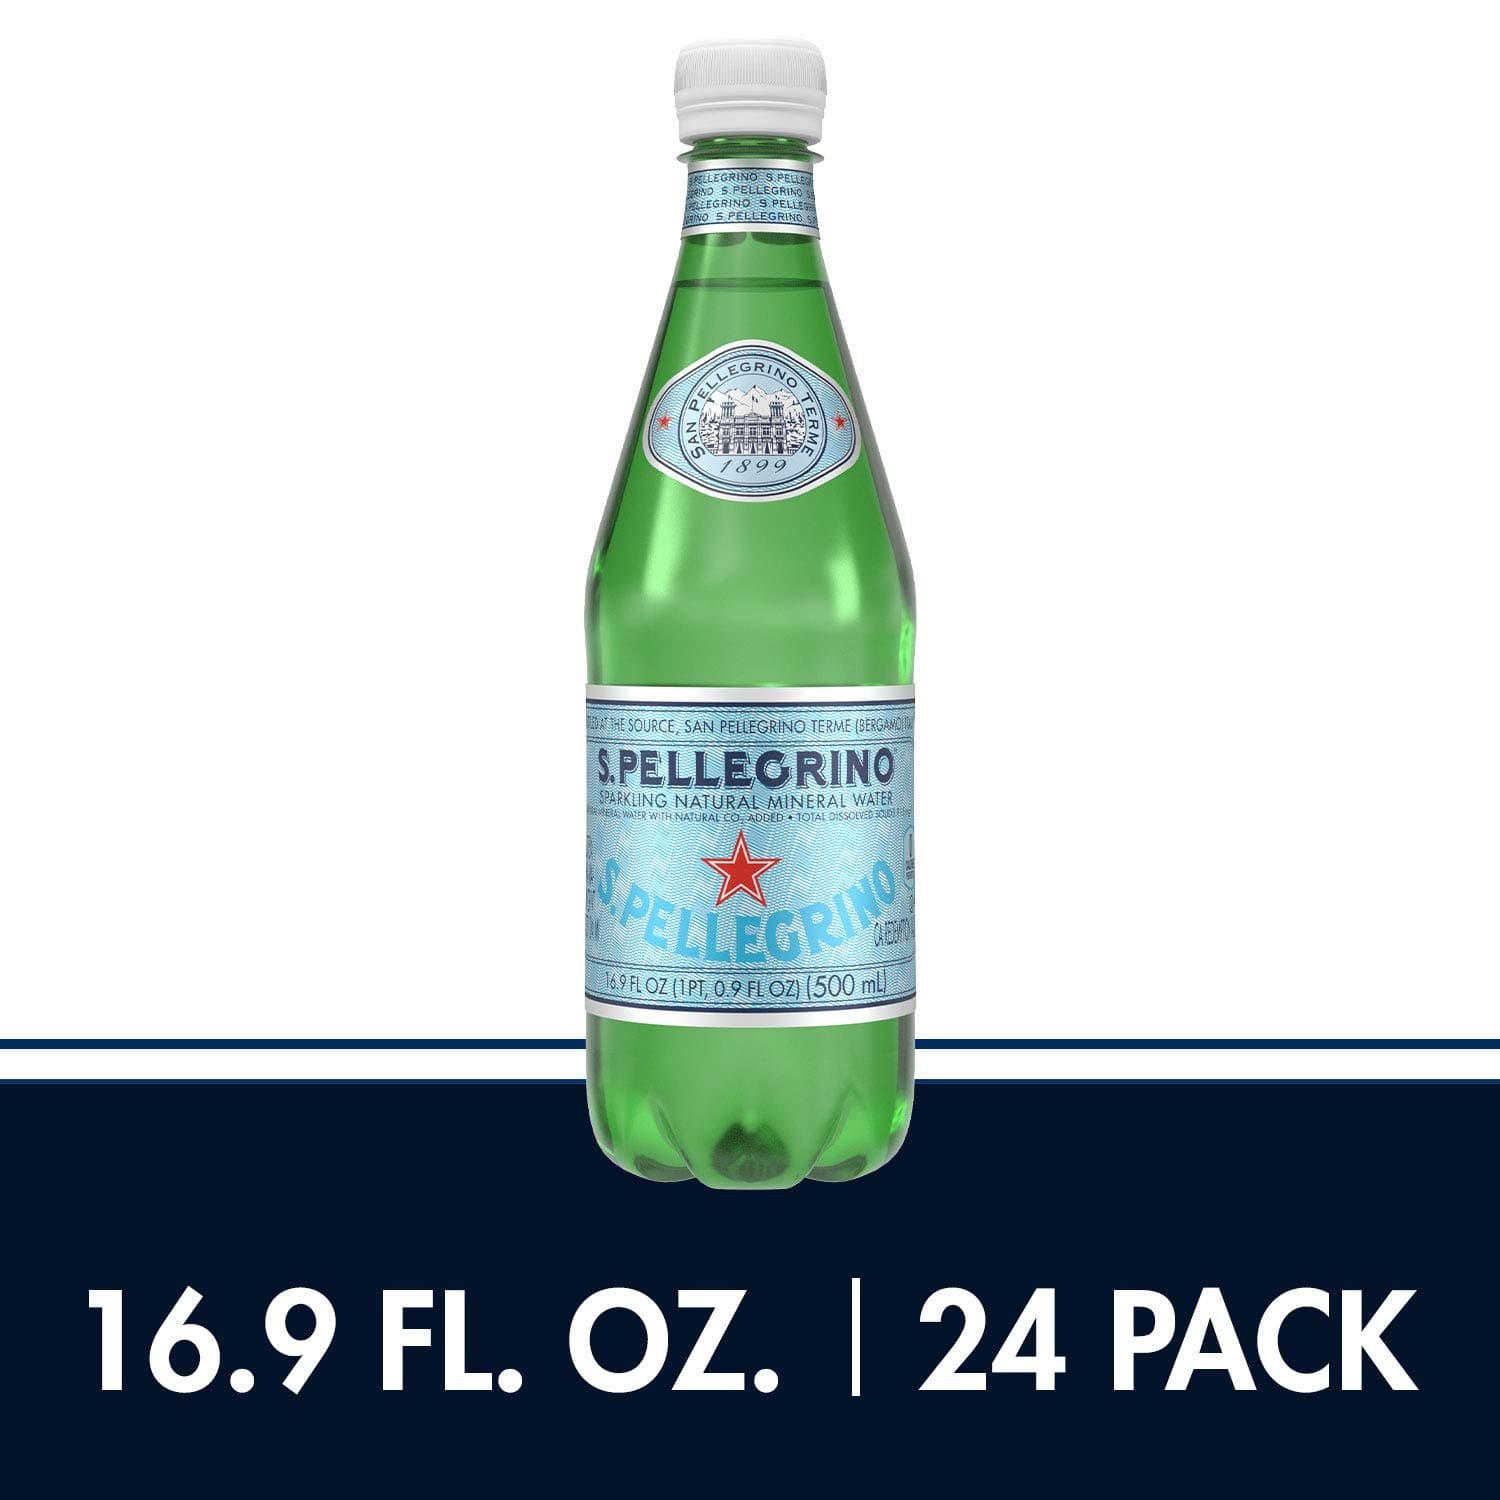 24-Count 16.9oz S.Pellegrino Sparkling Natural Mineral Water $10.49 + Free Shipping w/ Prime